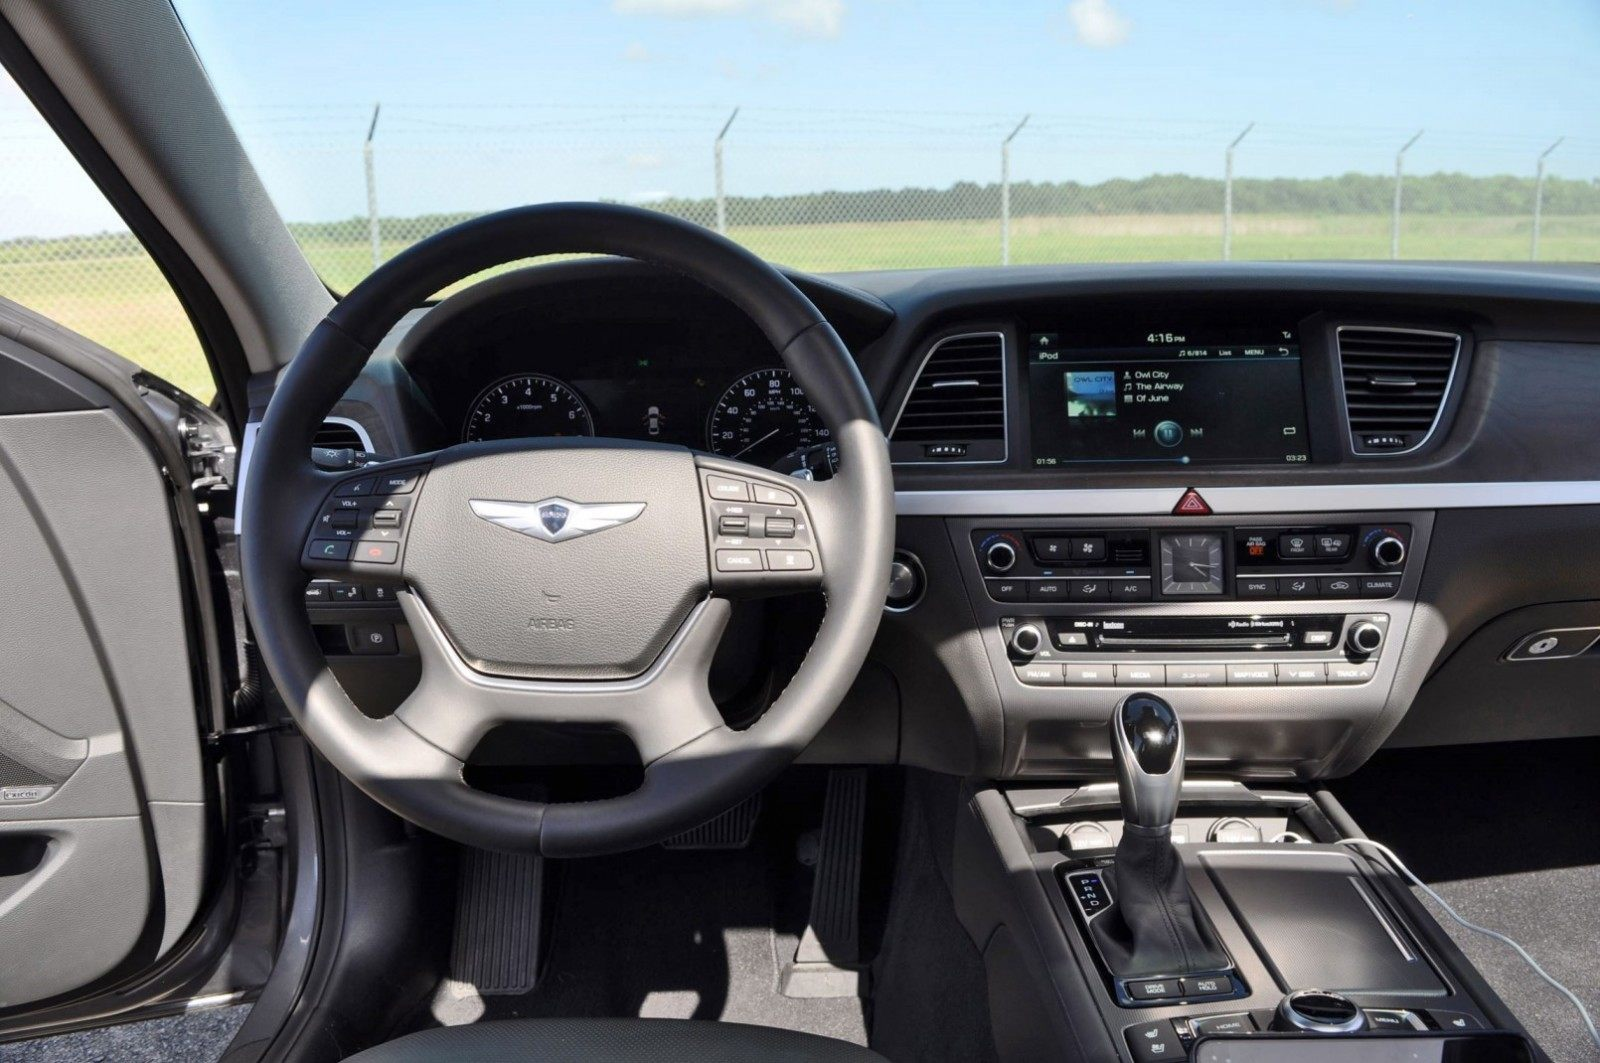 2015 Hyundai Genesis 3 8 Awd Interior Photos 15